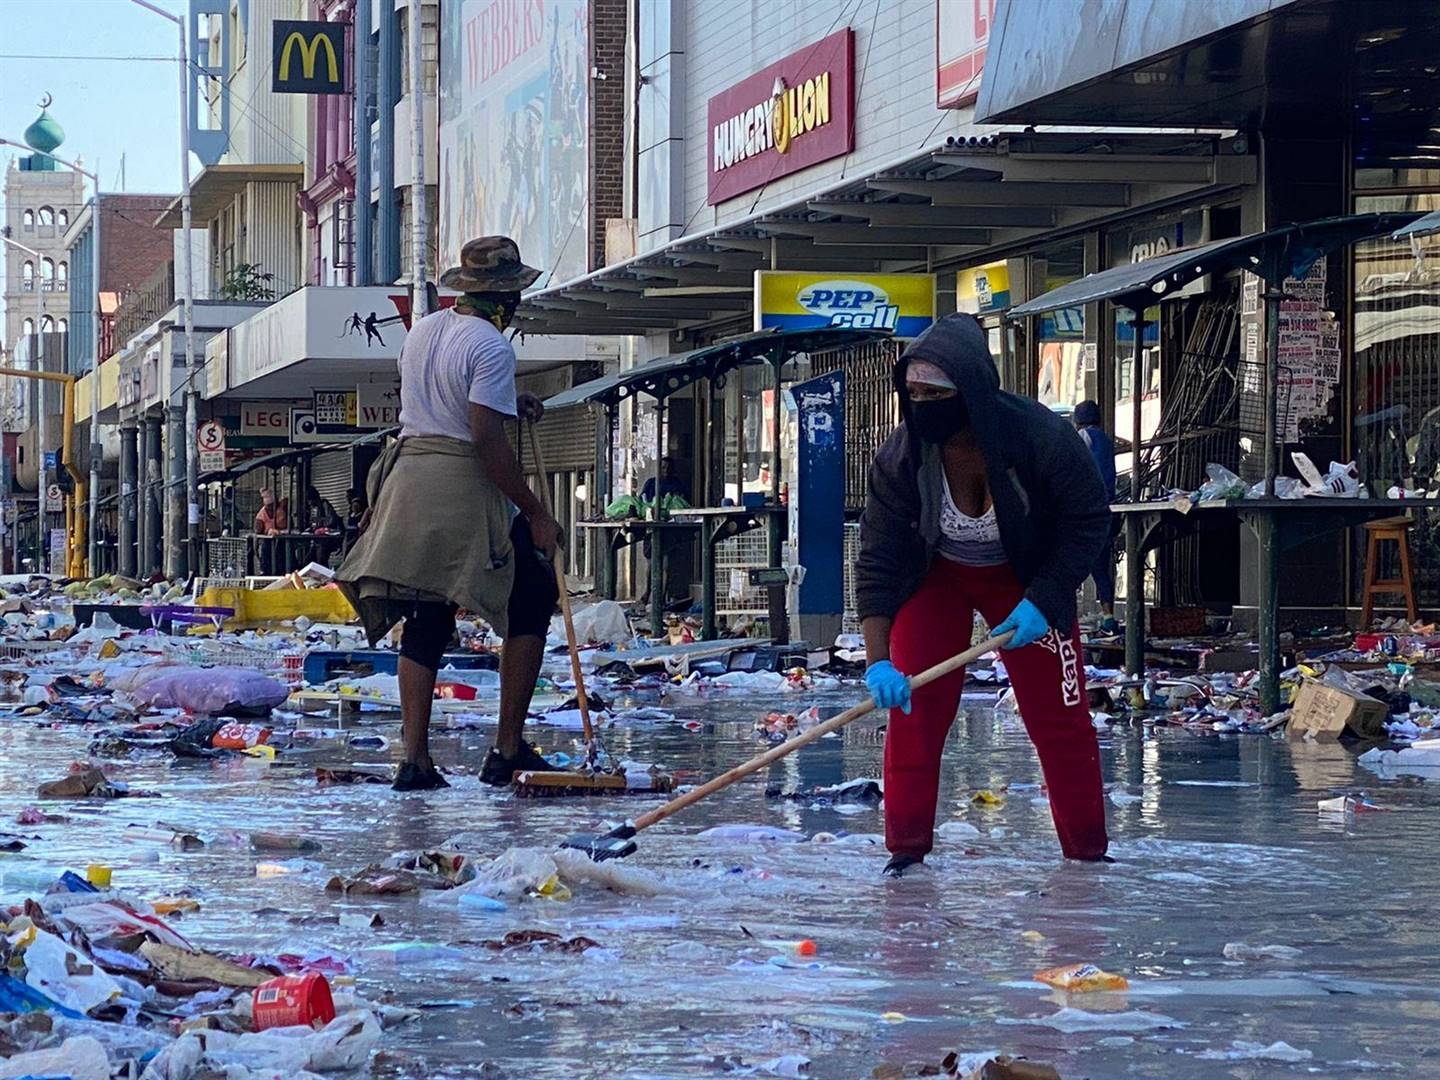 Durban taxi rank drivers and community members clean the streets in Durban central.